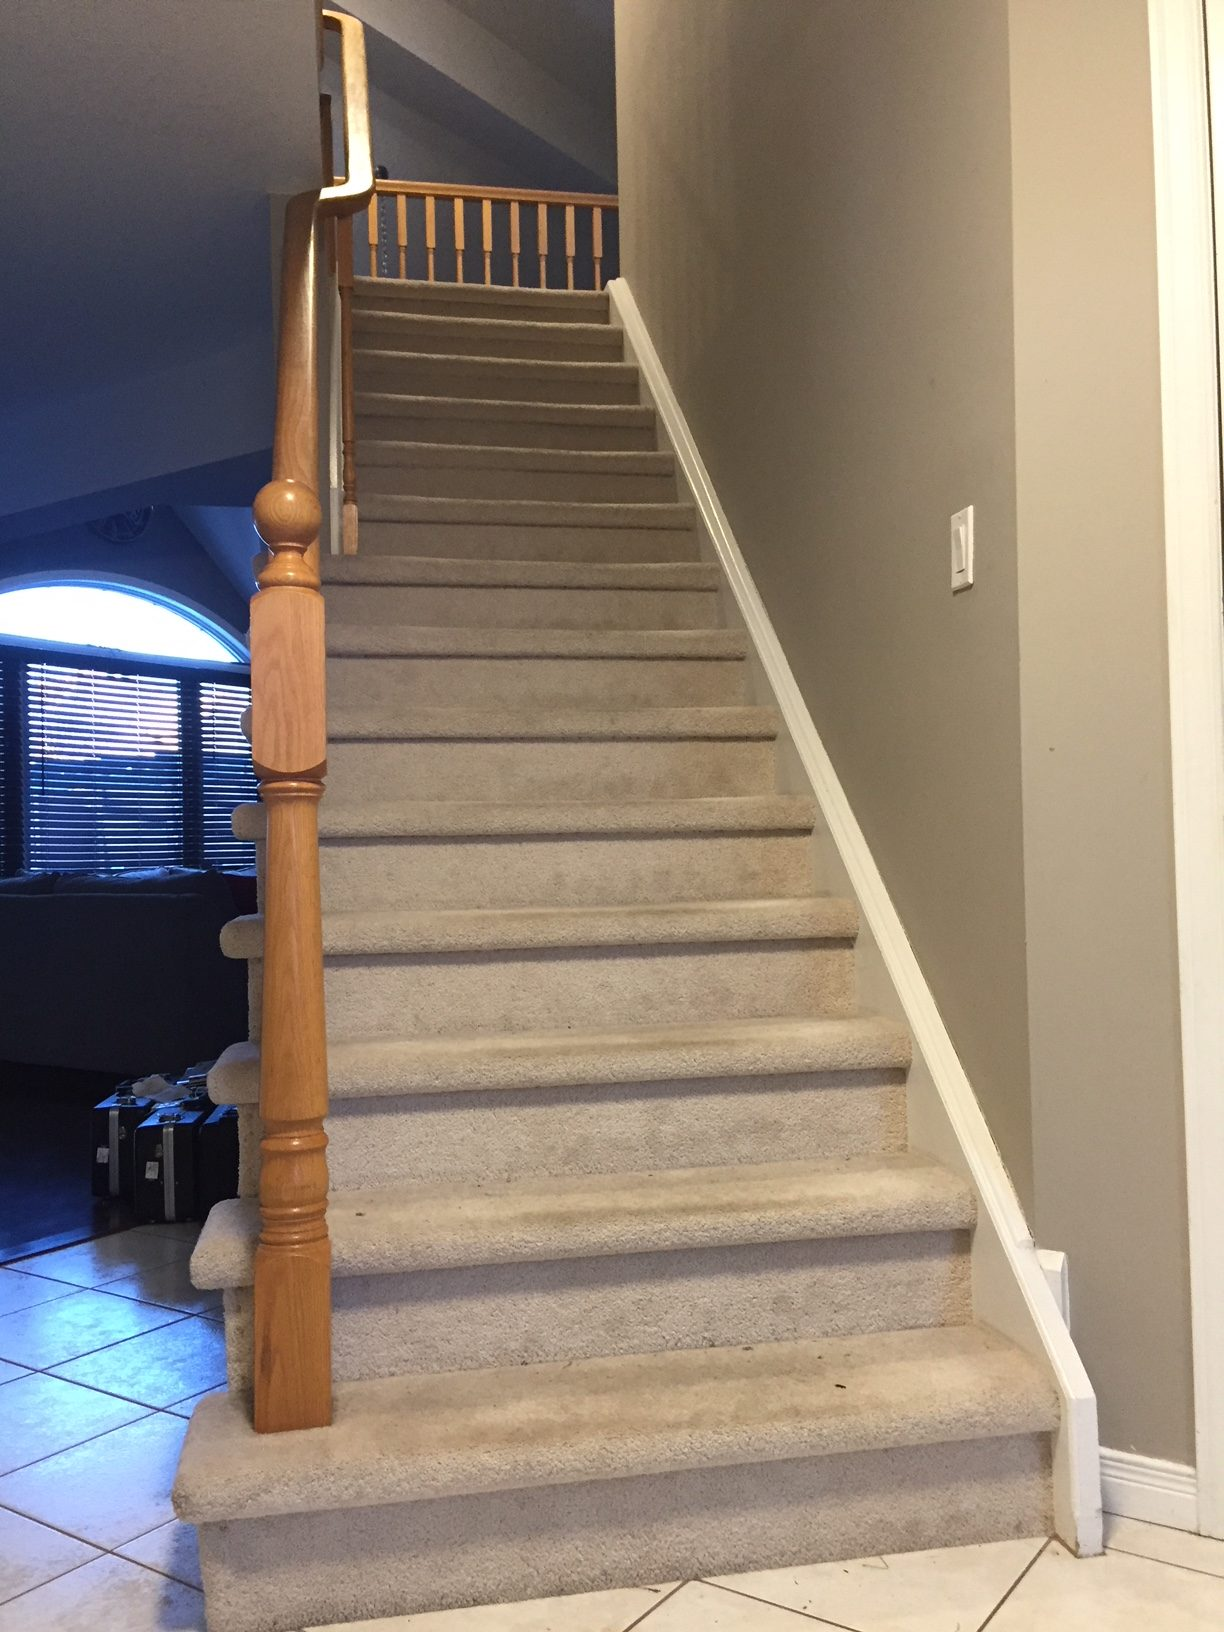 New Indoor Railings For Staircase Ballpark Estimate Redflagdeals Com Forums